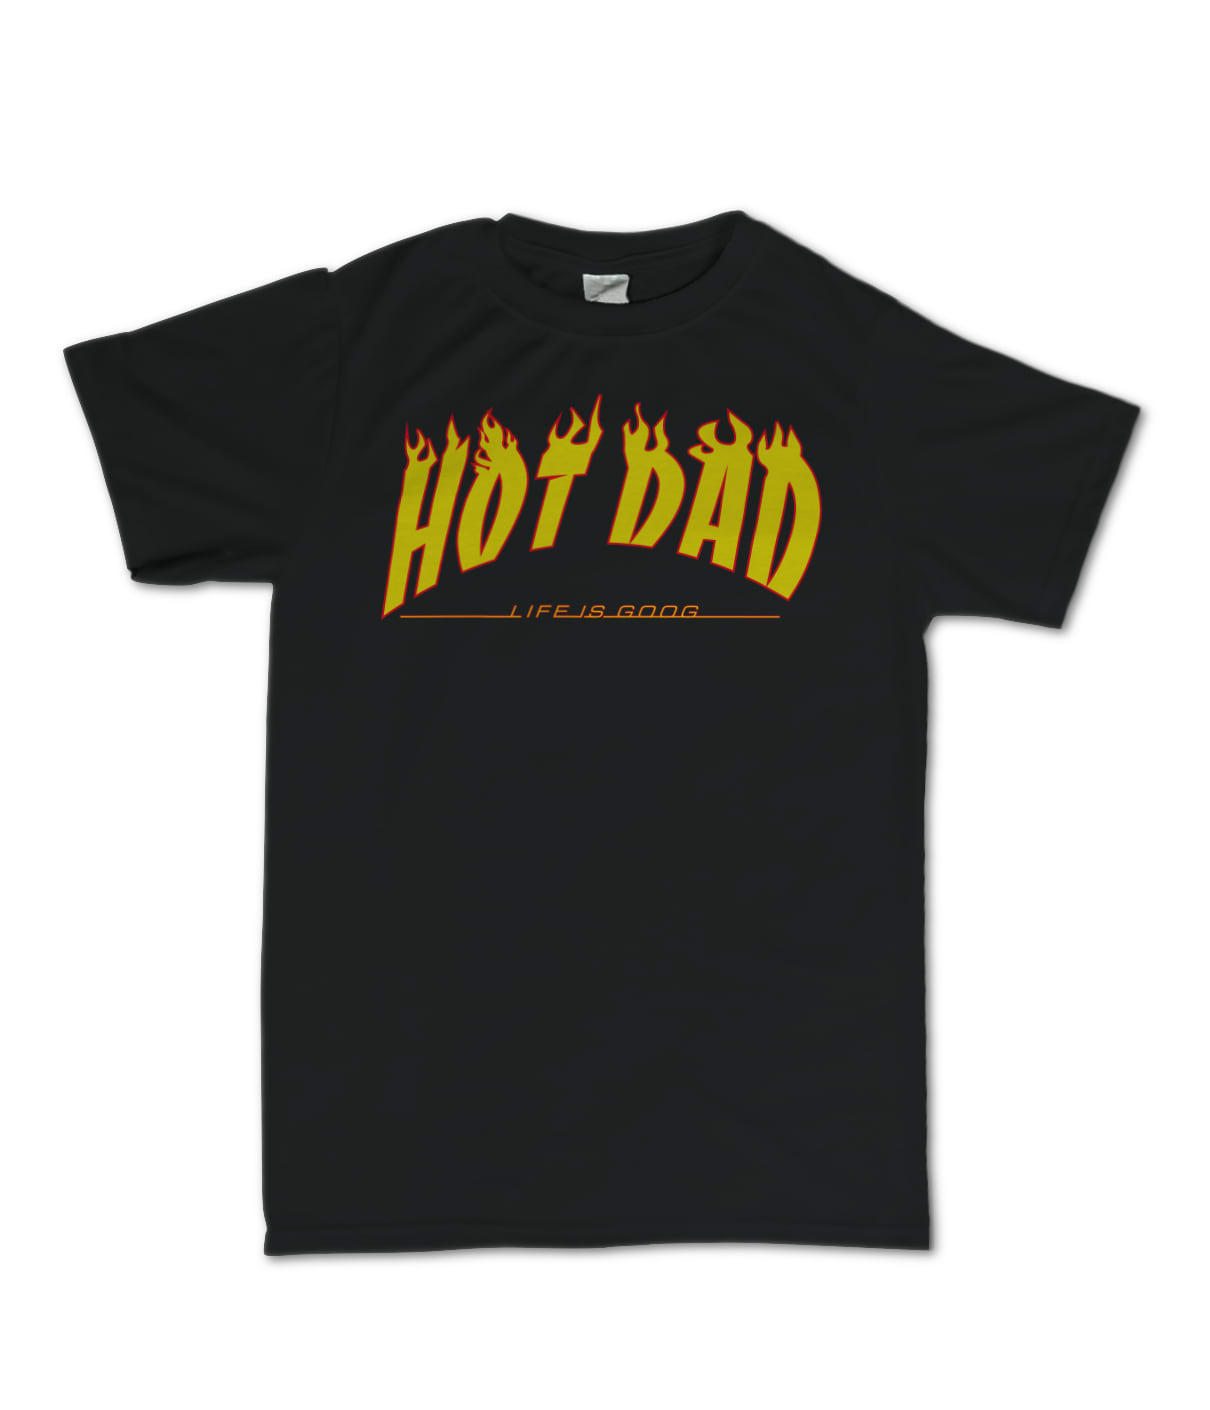 Hot dad thrash dad  black  1510525552